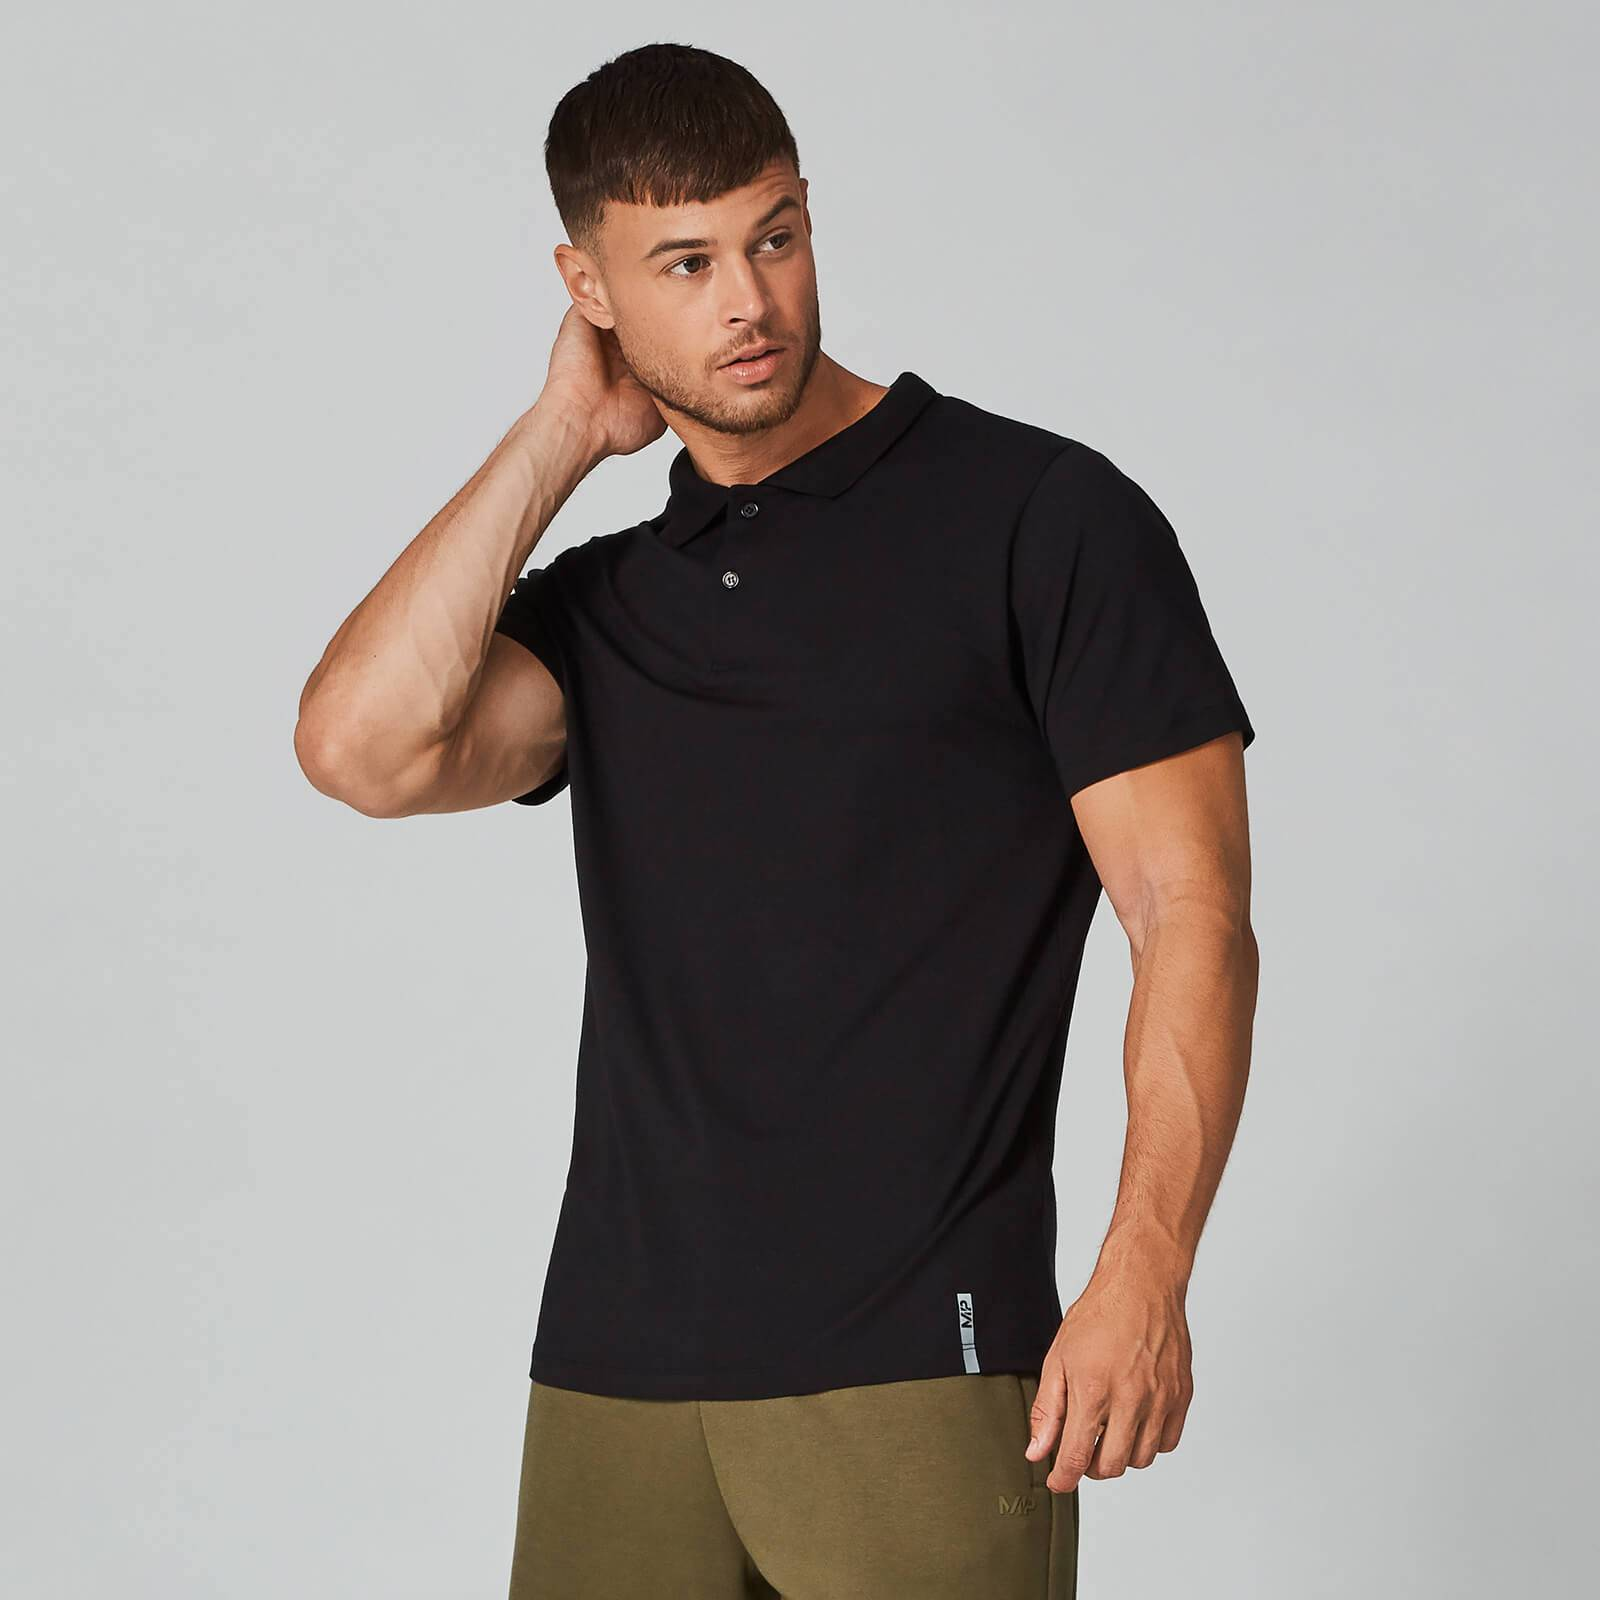 Myprotein Luxe Classic Polo - Black - S